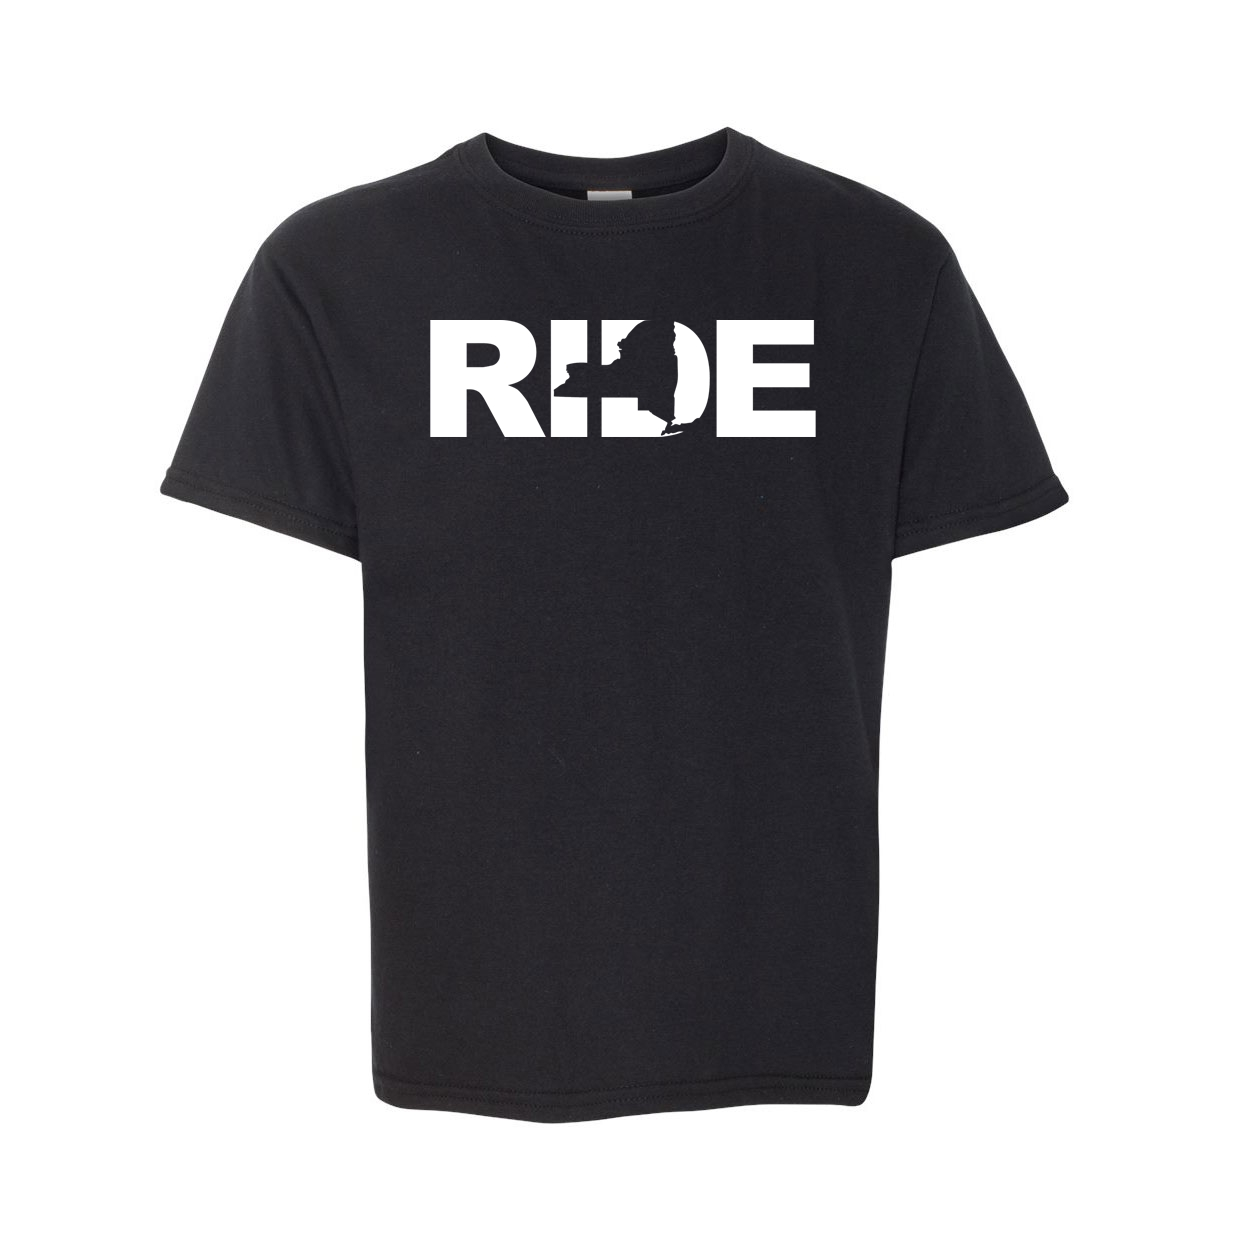 Ride New York Classic Youth T-Shirt Black (White Logo)